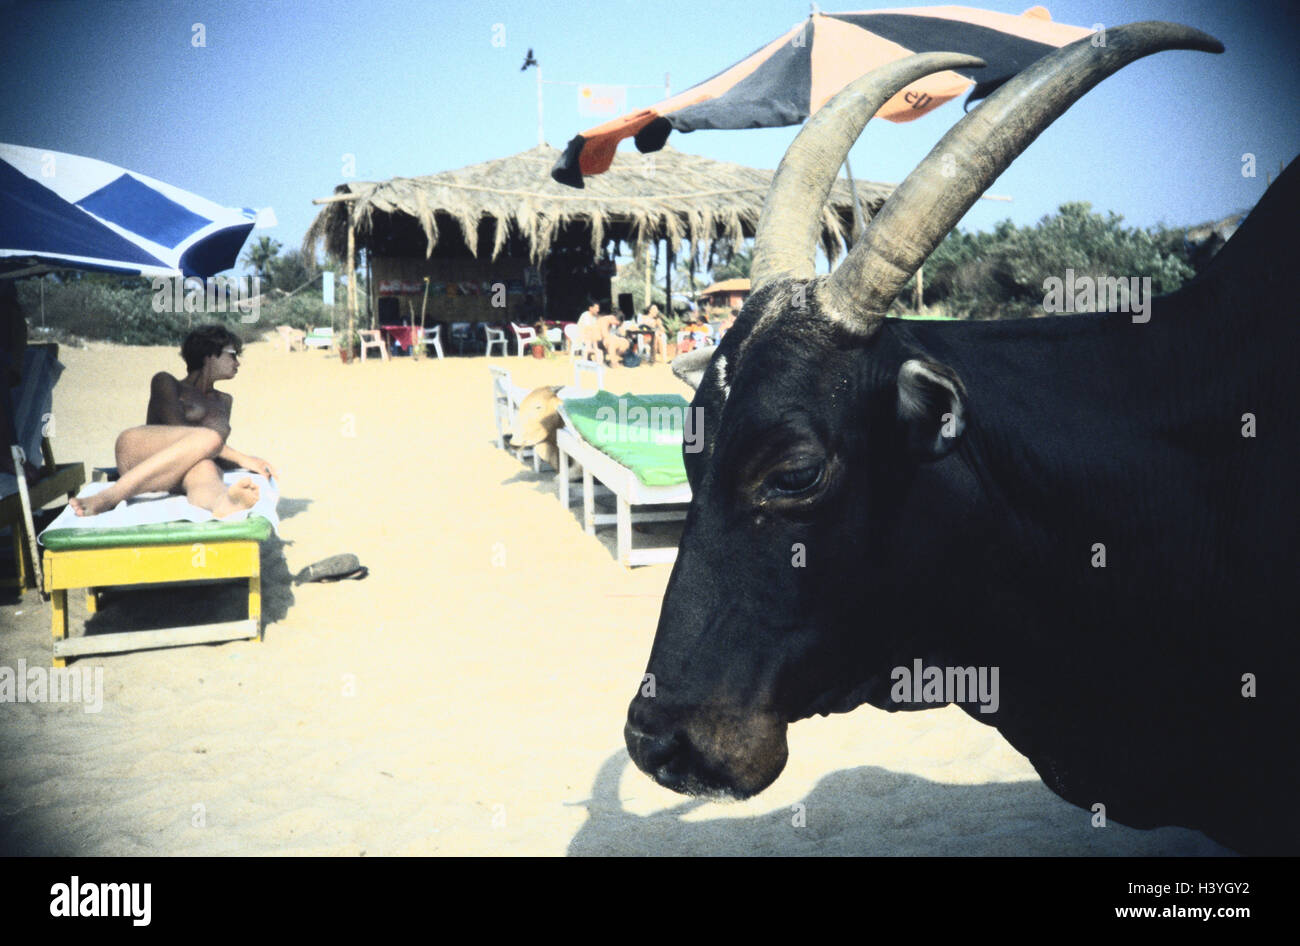 India, Goa, beach, bathers, cattles, holy cows, no model release tourism, vacation, beach, sandy beach, deck chairs, - Stock Image